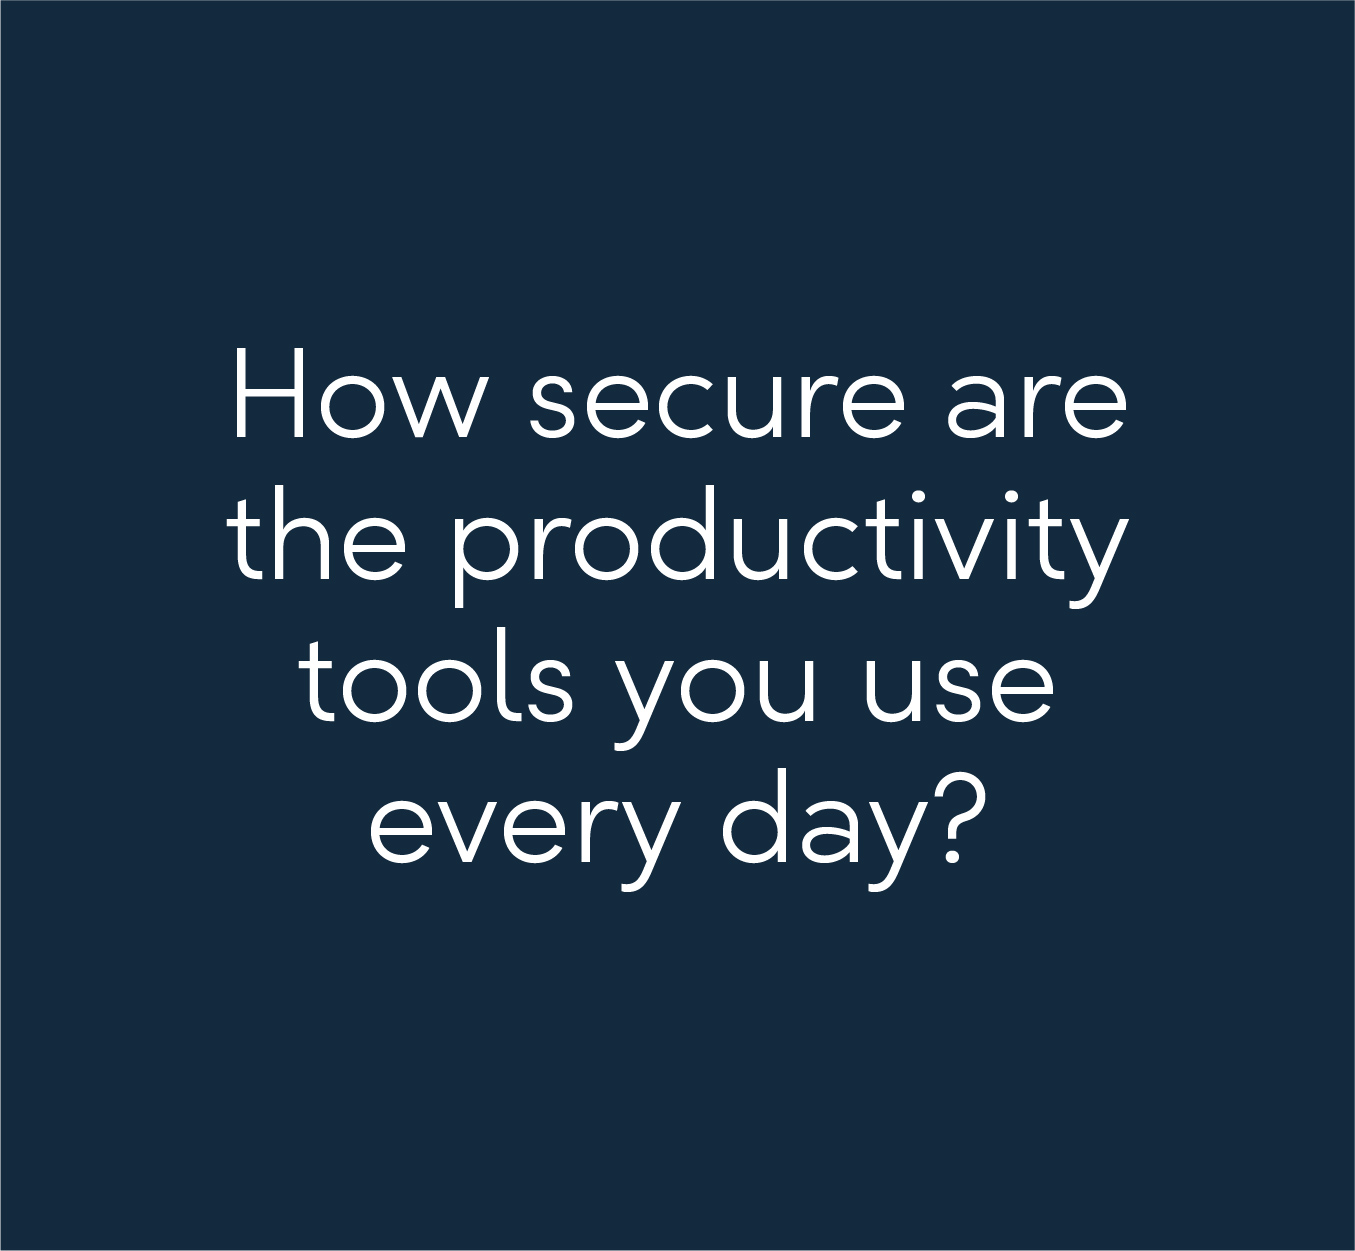 How secure are the productivity tools you use every day?